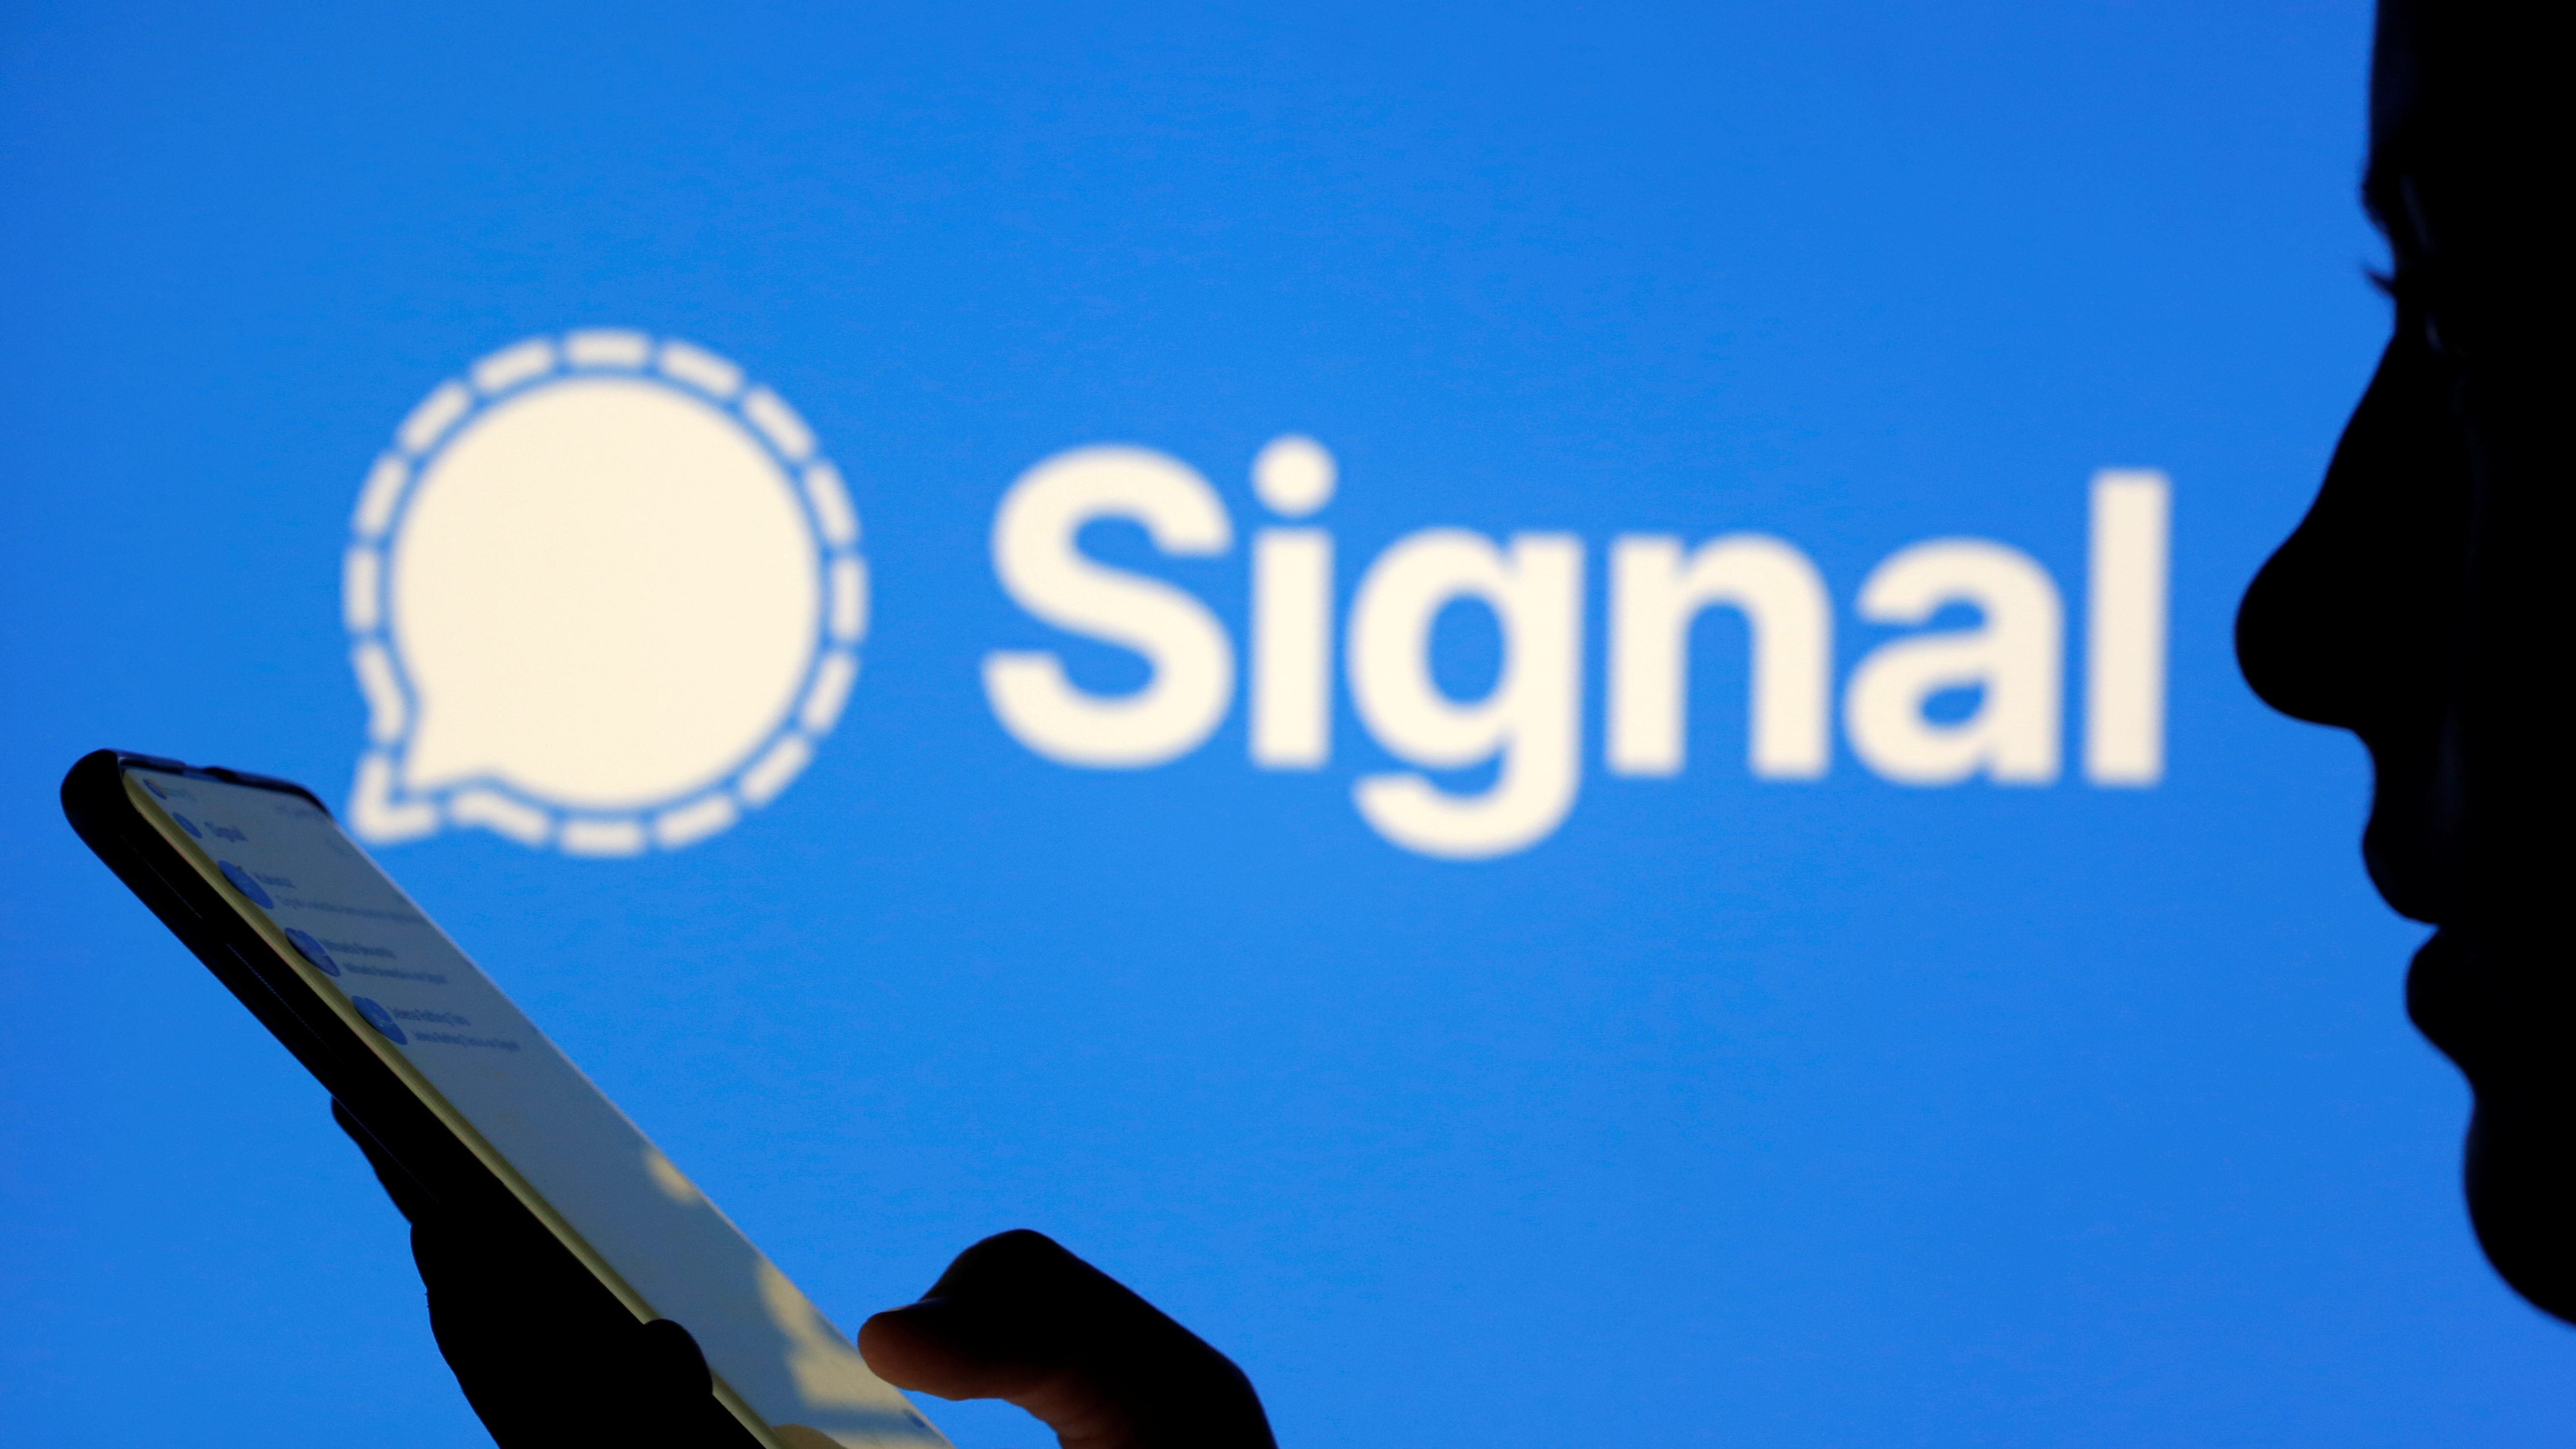 India's new social media guidelines could make Signal's strength its weakness